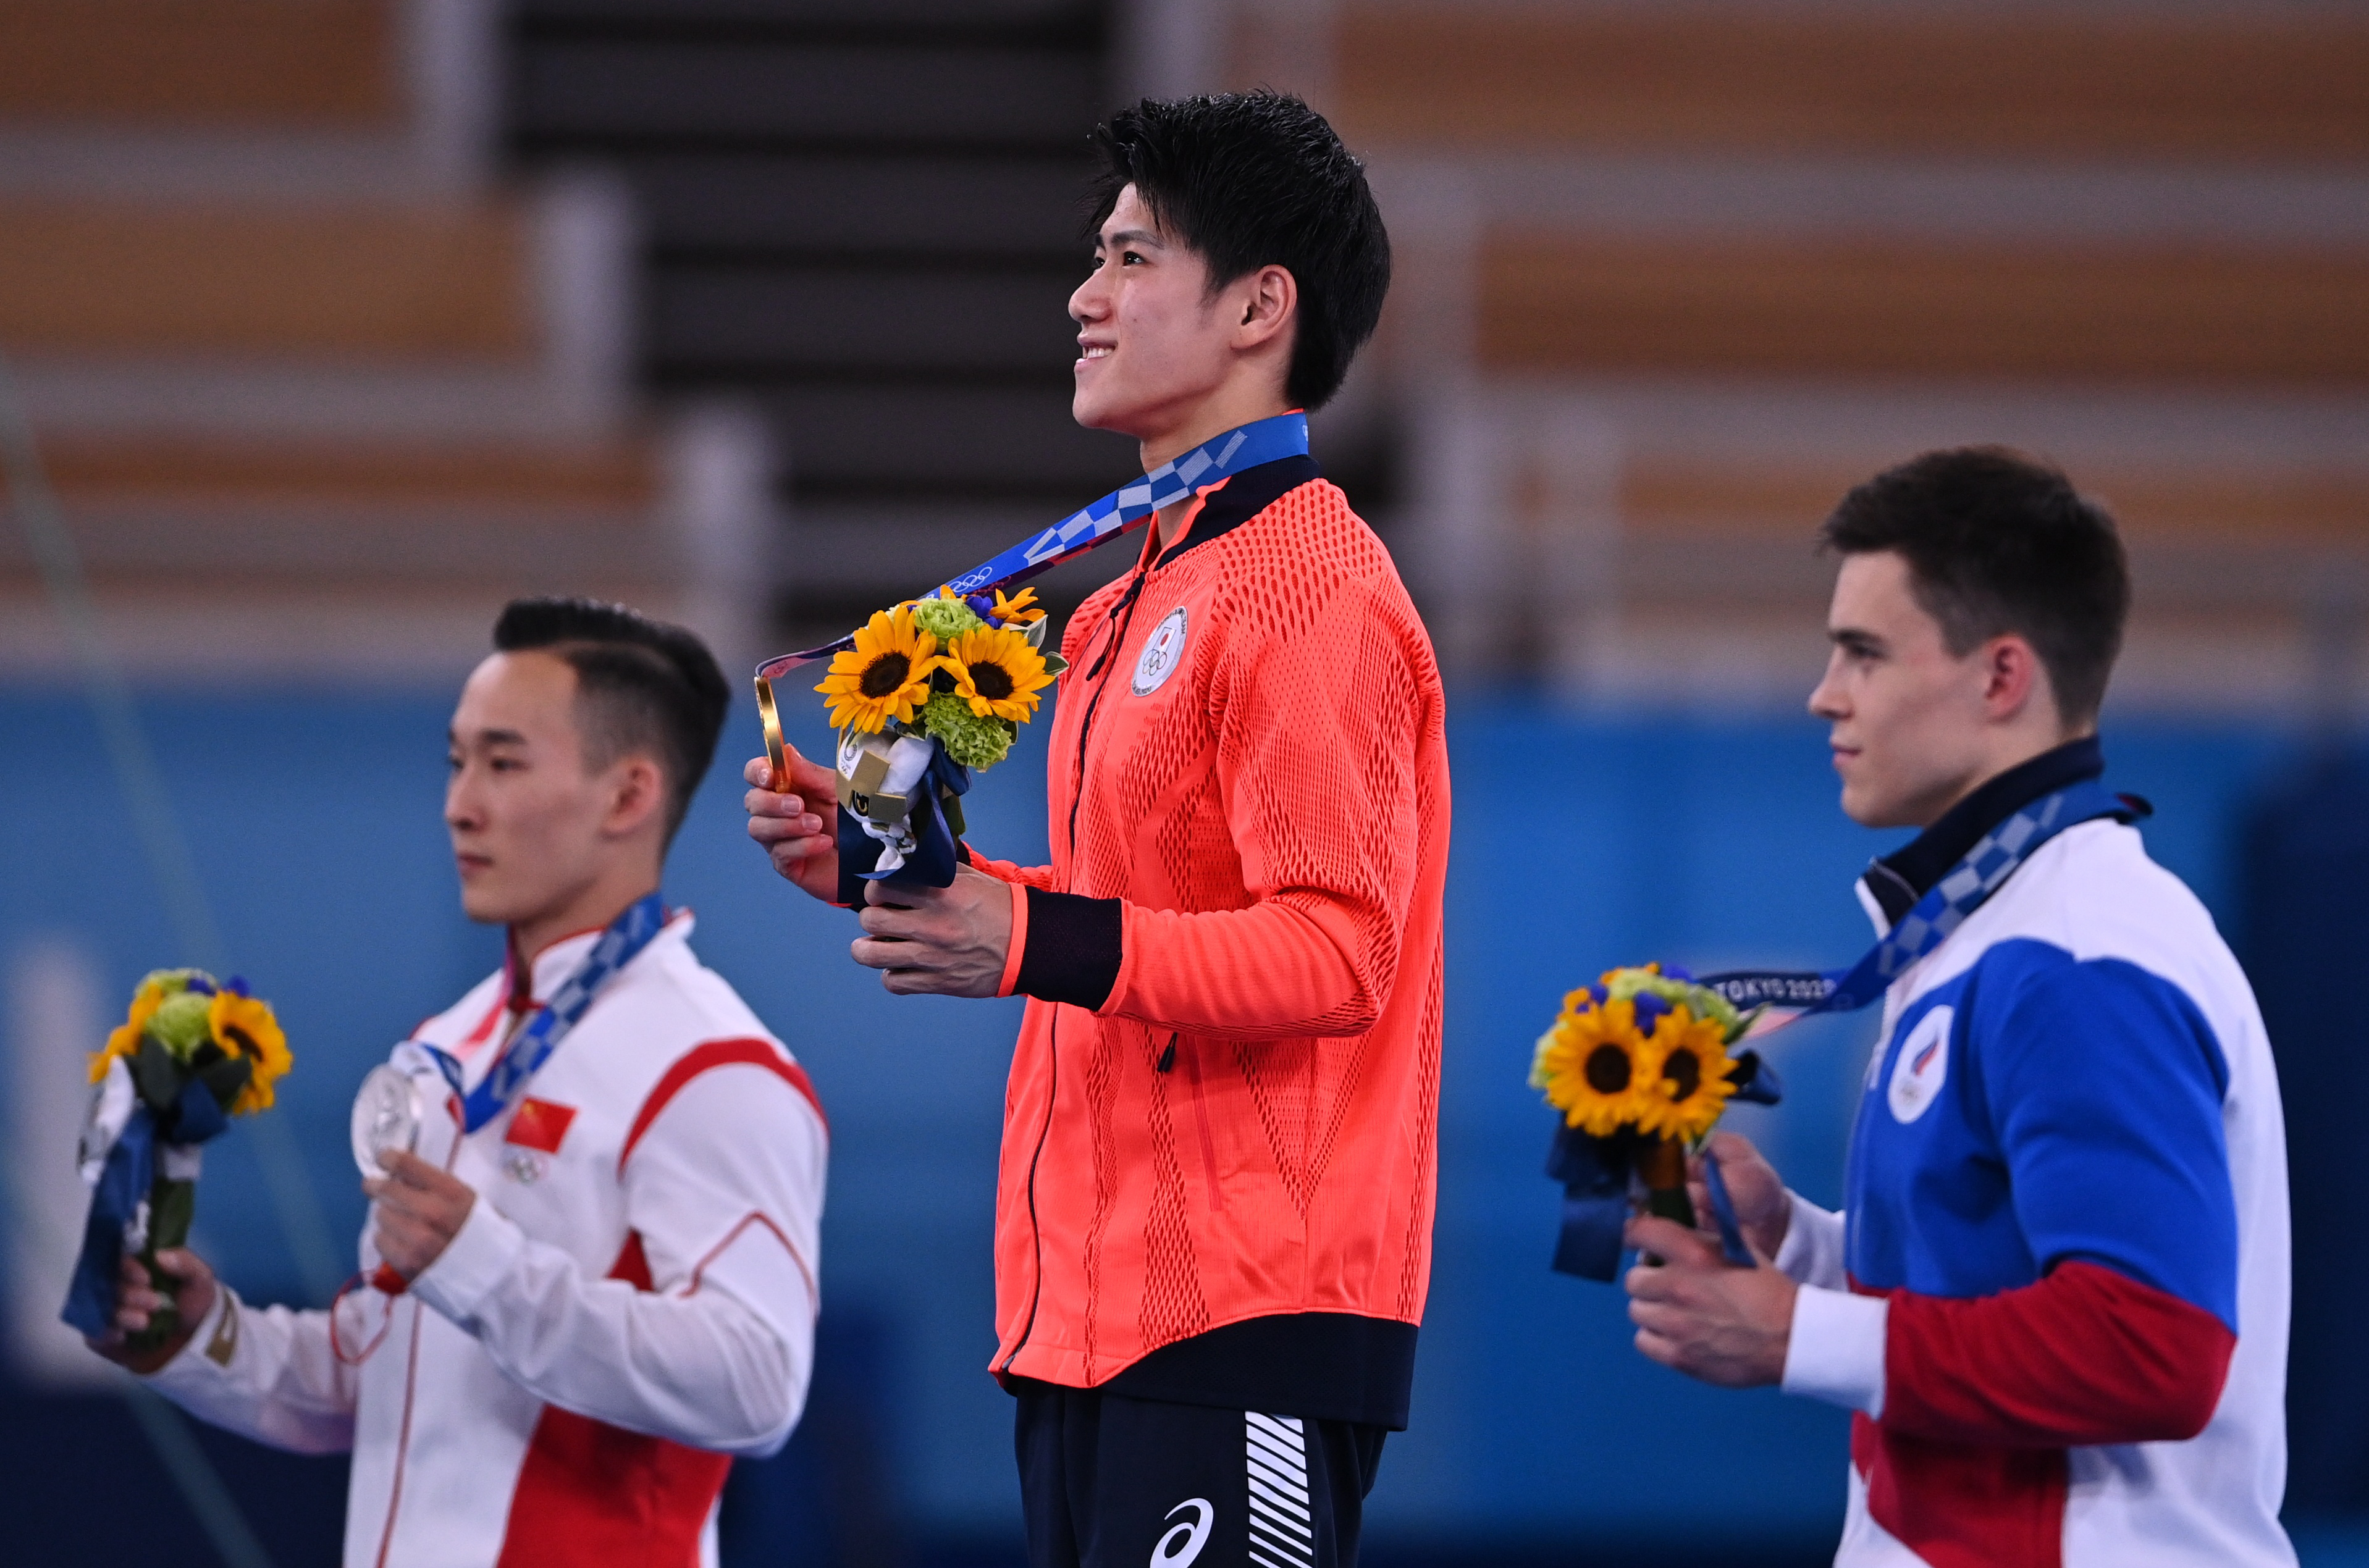 Tokyo 2020 Olympics - Gymnastics - Artistic - Men's Individual All-Around - Medal Ceremony - Ariake Gymnastics Centre, Tokyo, Japan - July 28, 2021. Gold medallist Daiki Hashimoto of Japan poses on the podium with silver medallist Xiao Ruoteng of China and bronze medallist Nikita Nagornyy of the Russian Olympic Committee REUTERS/Dylan Martinez